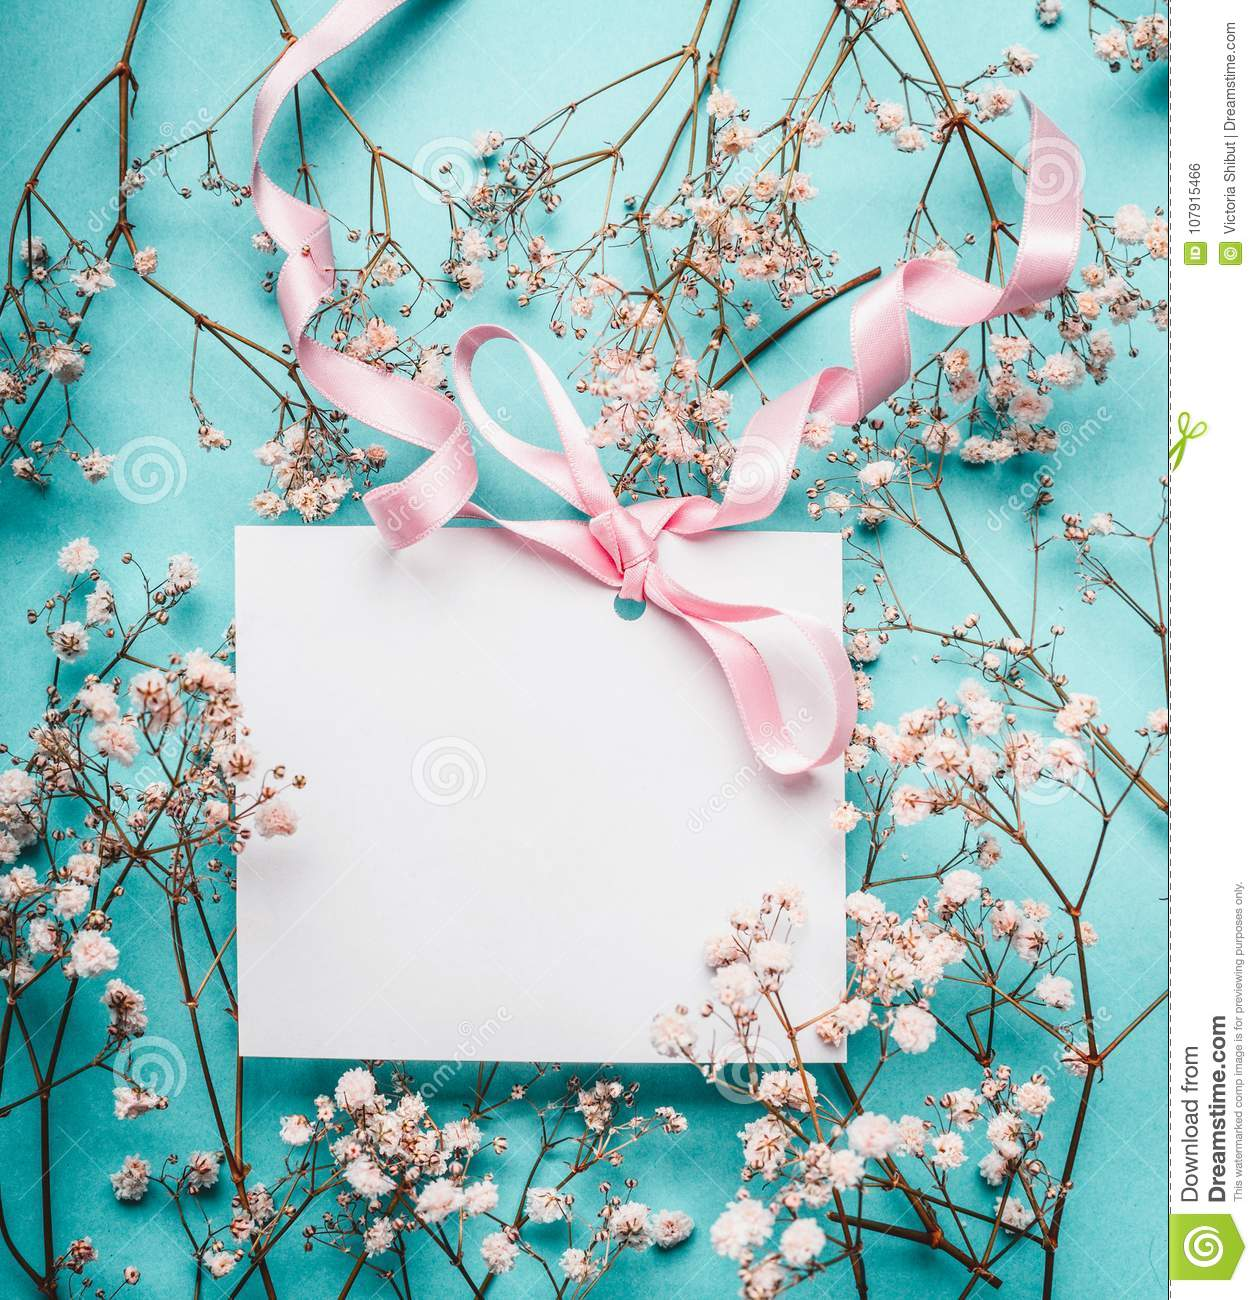 Blank white greeting card with pink ribbon on little white flowers at turquoise blue background